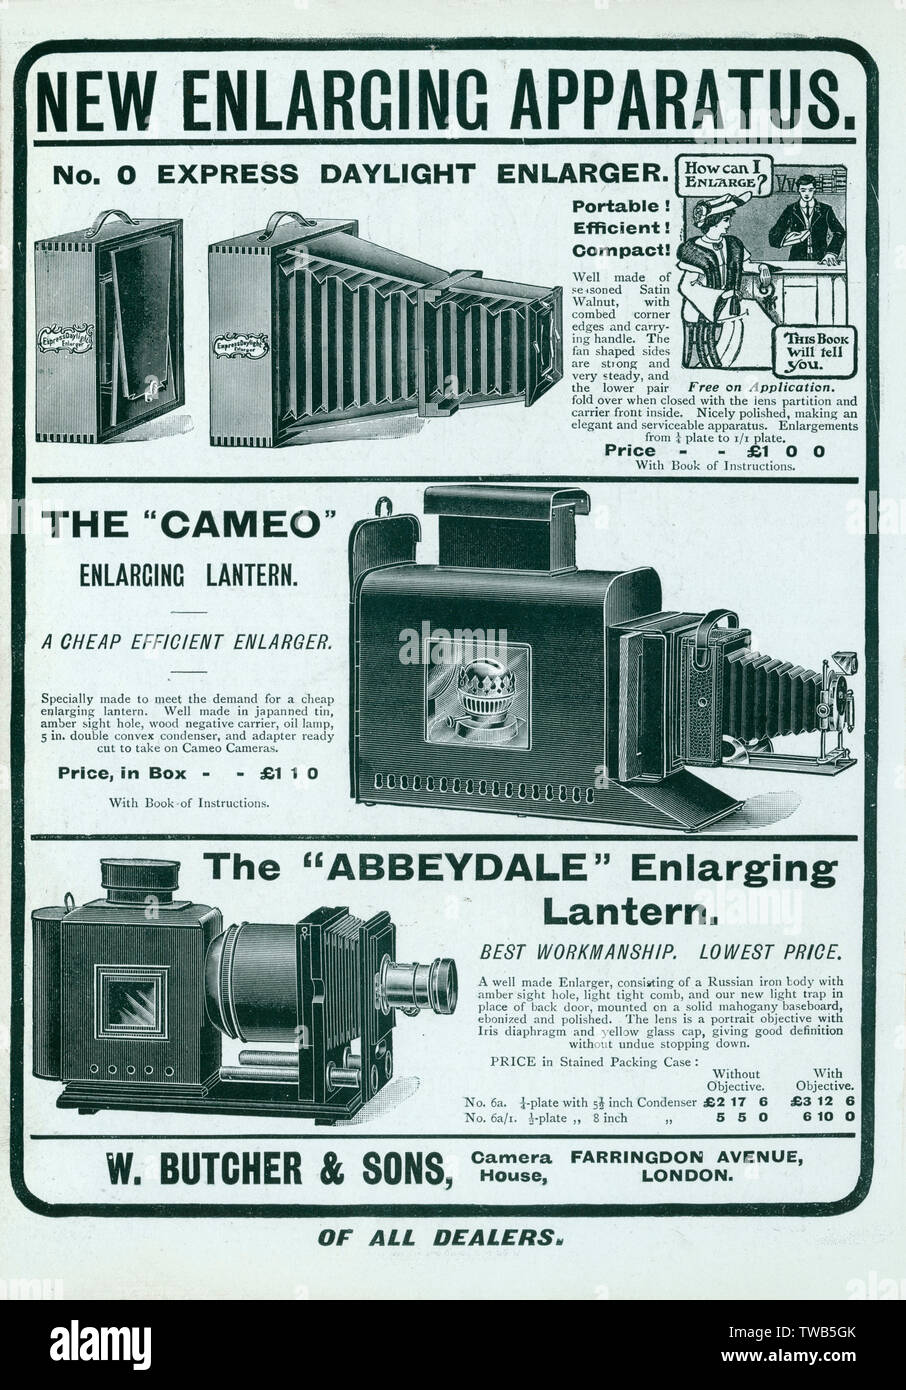 Advertisement from W.Butcher and Sons camera house based in London, England. The advert promotes 3 different enlargers for creating photographic prints.  1905 - Stock Image